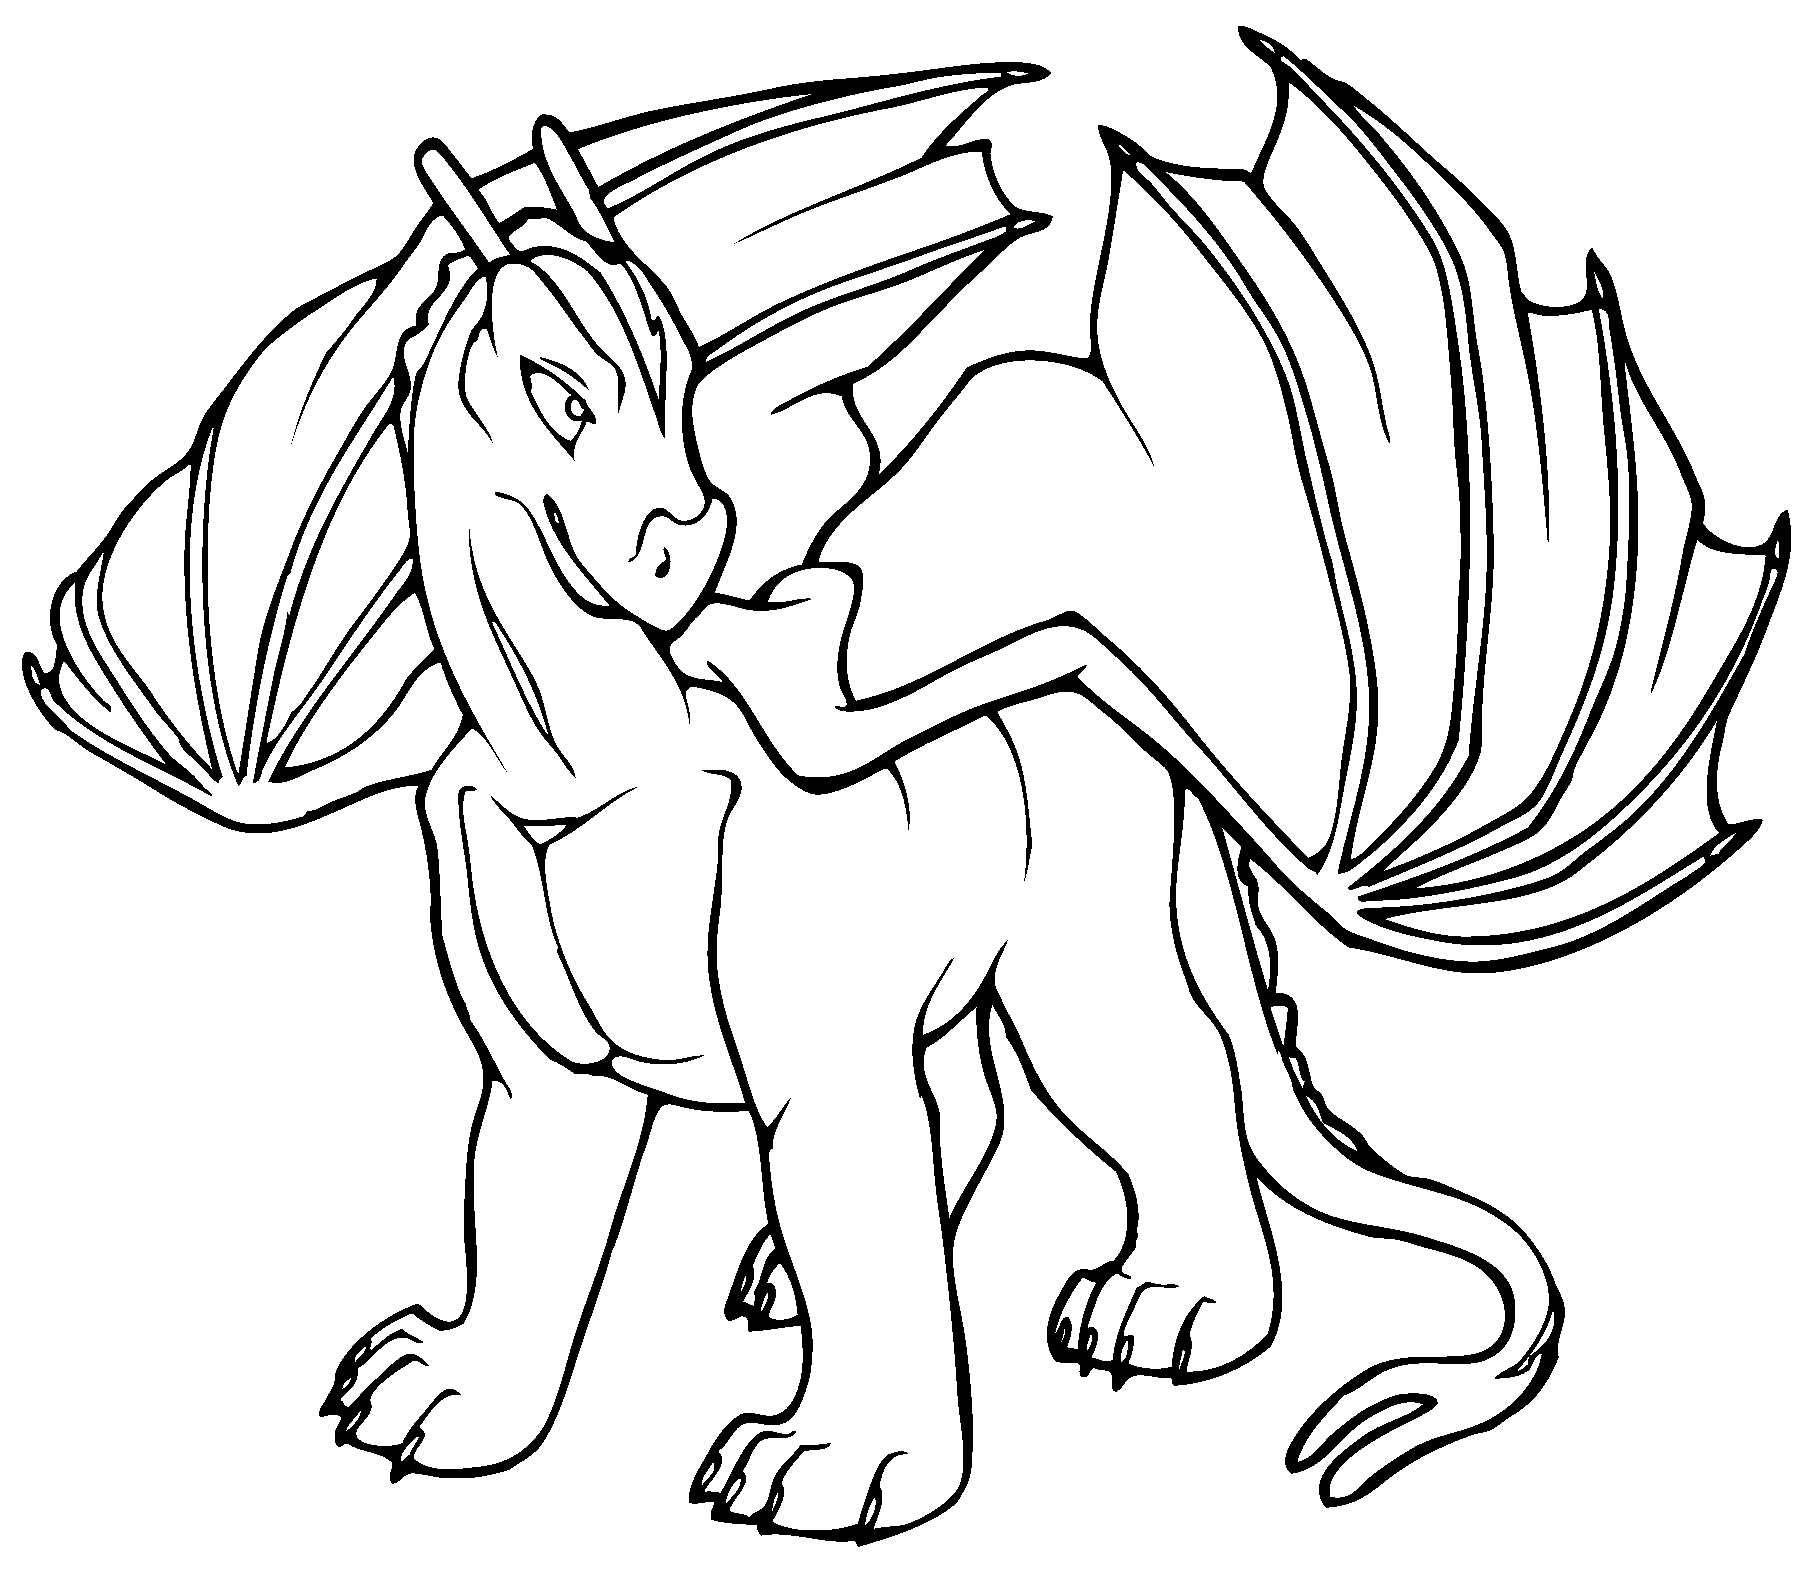 dragon pictures for kids free online dancing dragon colouring page kids activity kids for dragon pictures